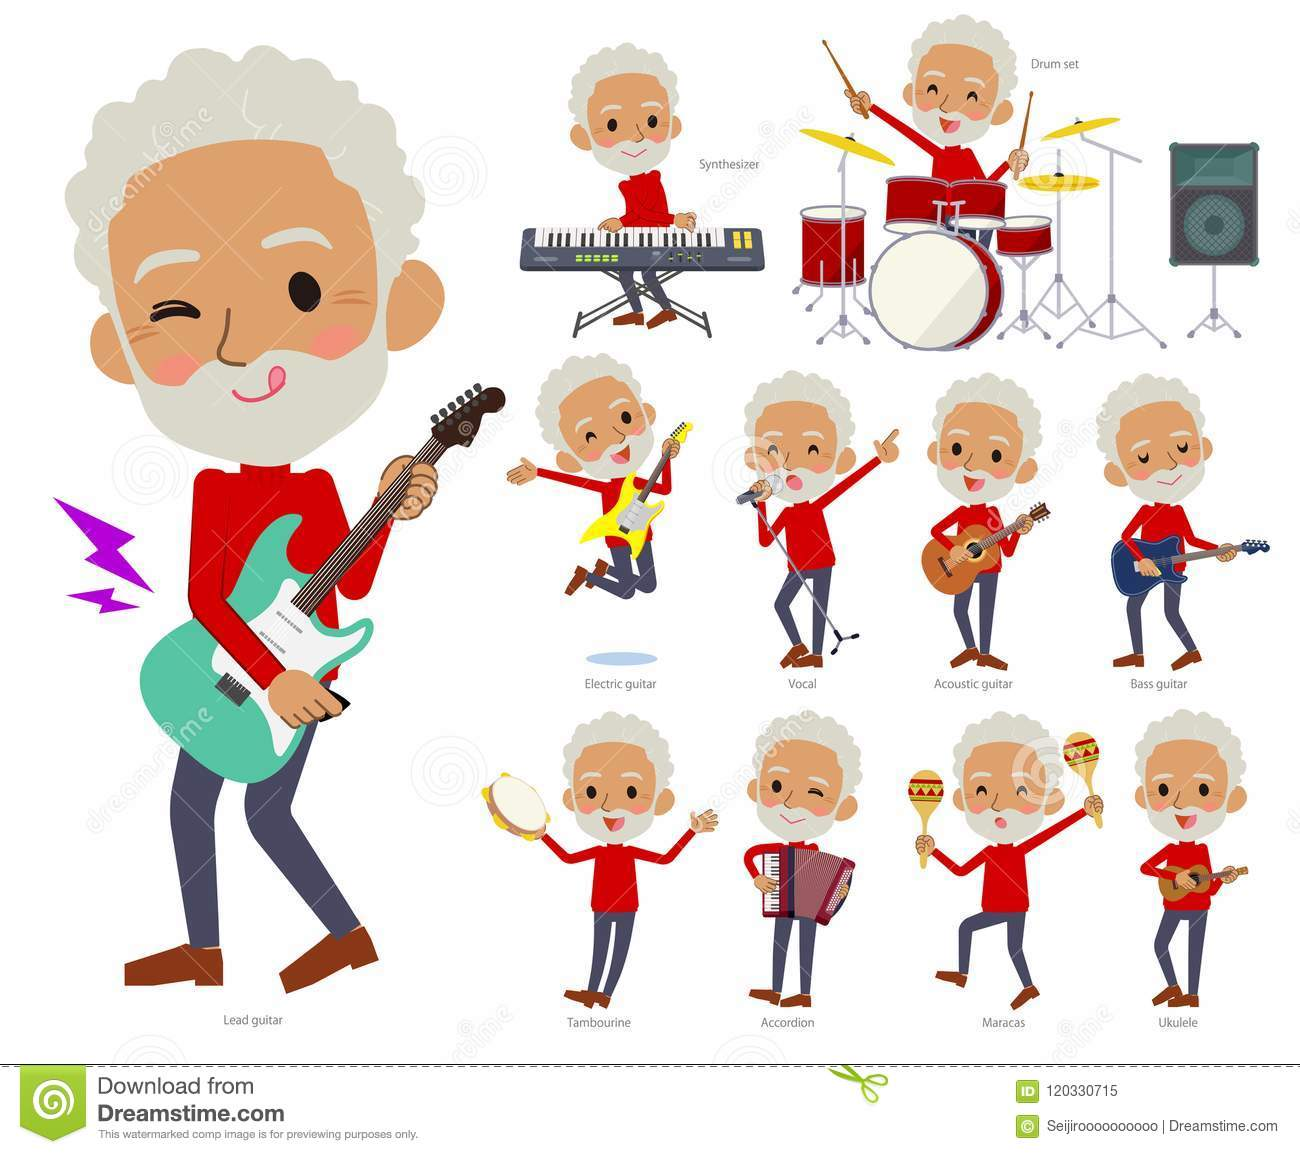 c864696e14 A set of old men playing rock `n` roll and pop music.There are also various  instruments such as ukulele and tambourine.It`s vector art so it`s easy to  edit.